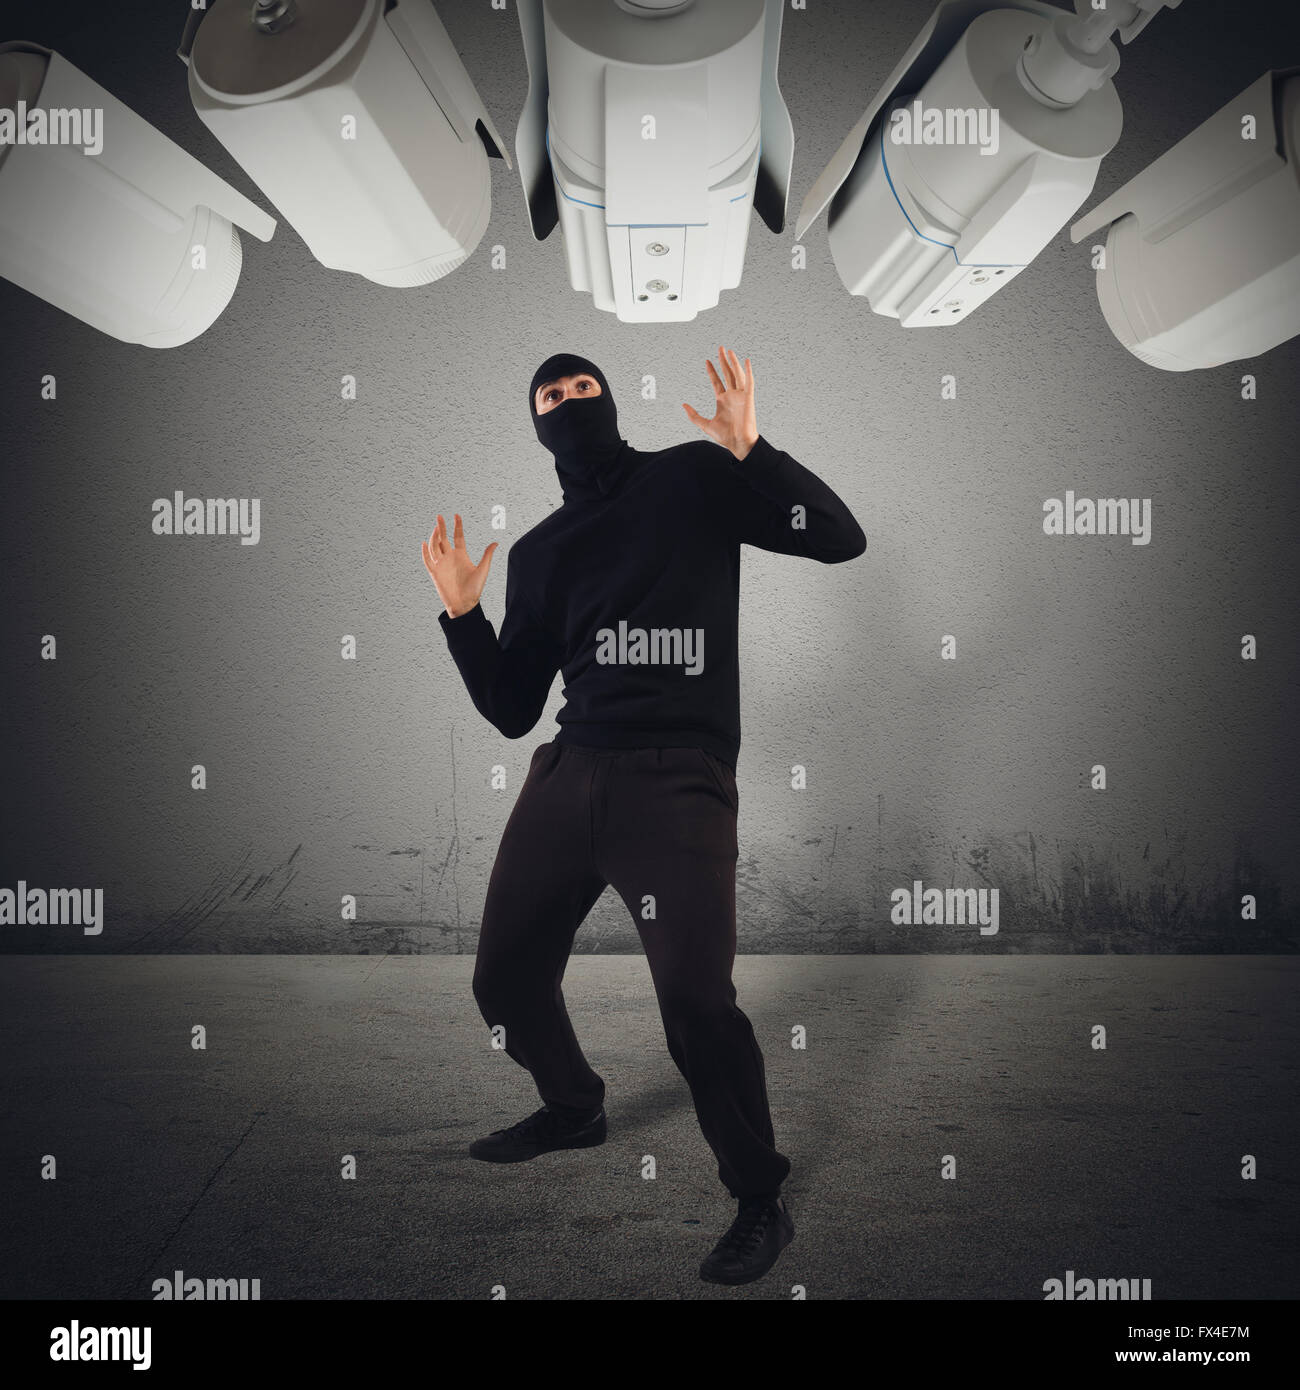 Thief caught red-handed - Stock Image